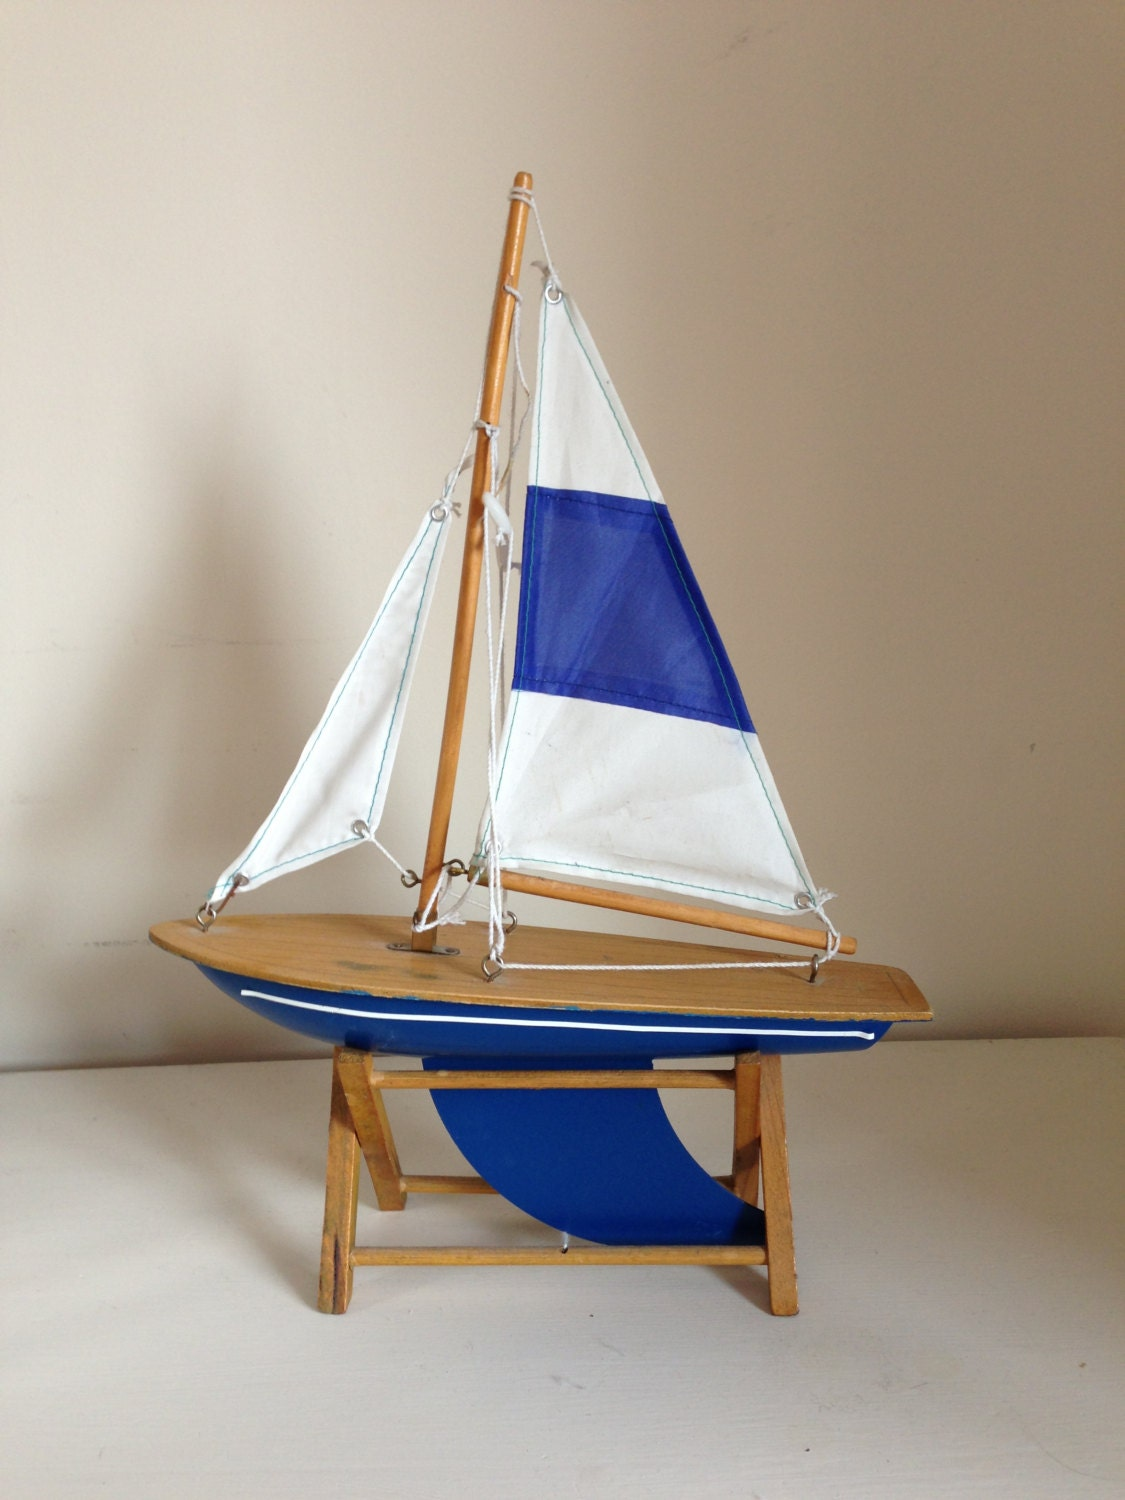 Vintage Wooden Sail Boat Toy Yacht With Stand Child S